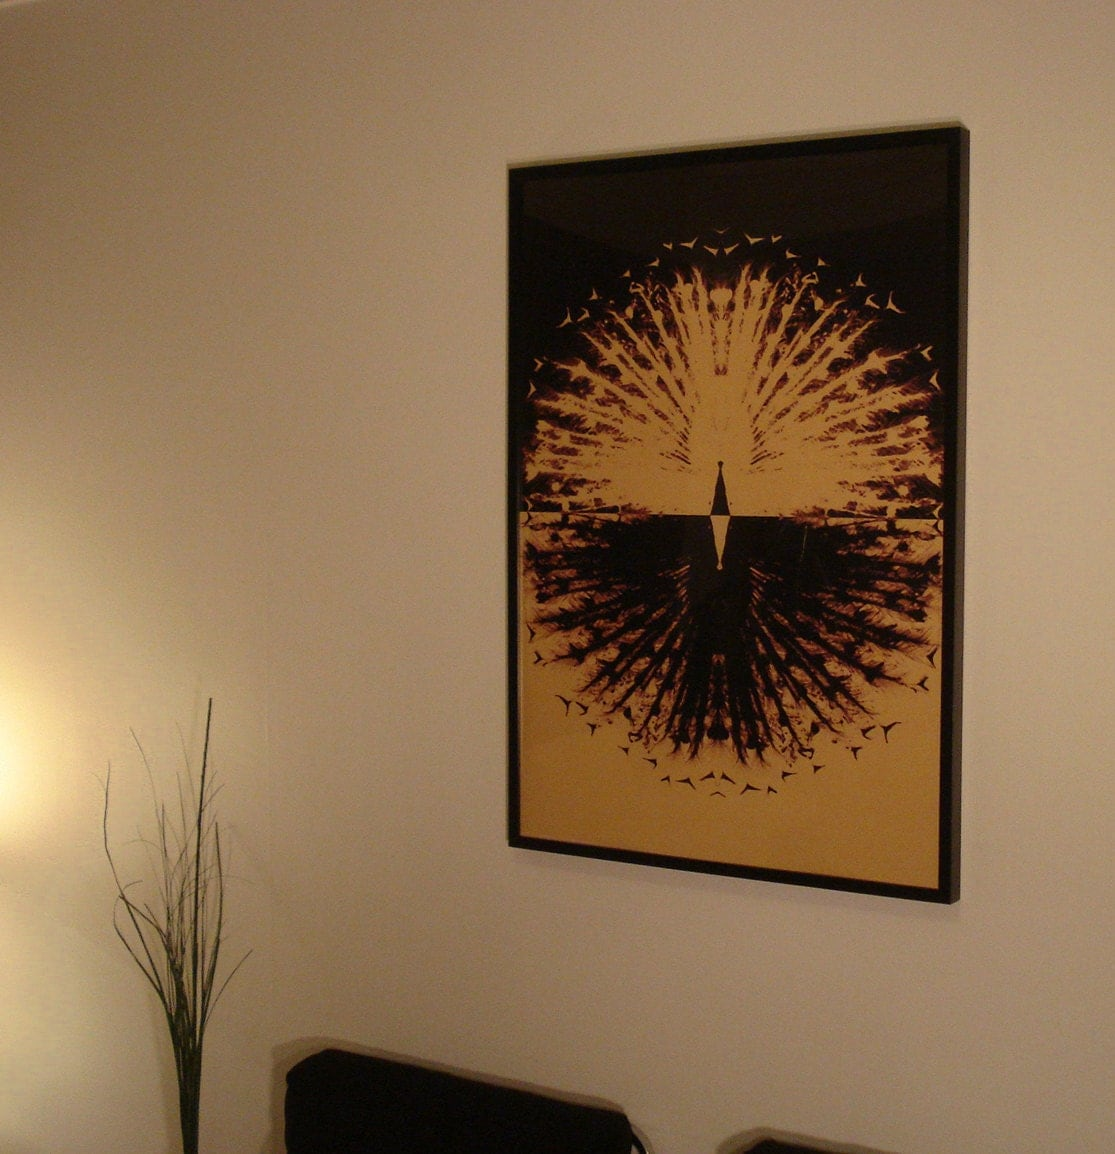 Mad Med Inspired Creative Lounge Peacock Wall Art 70x100cm